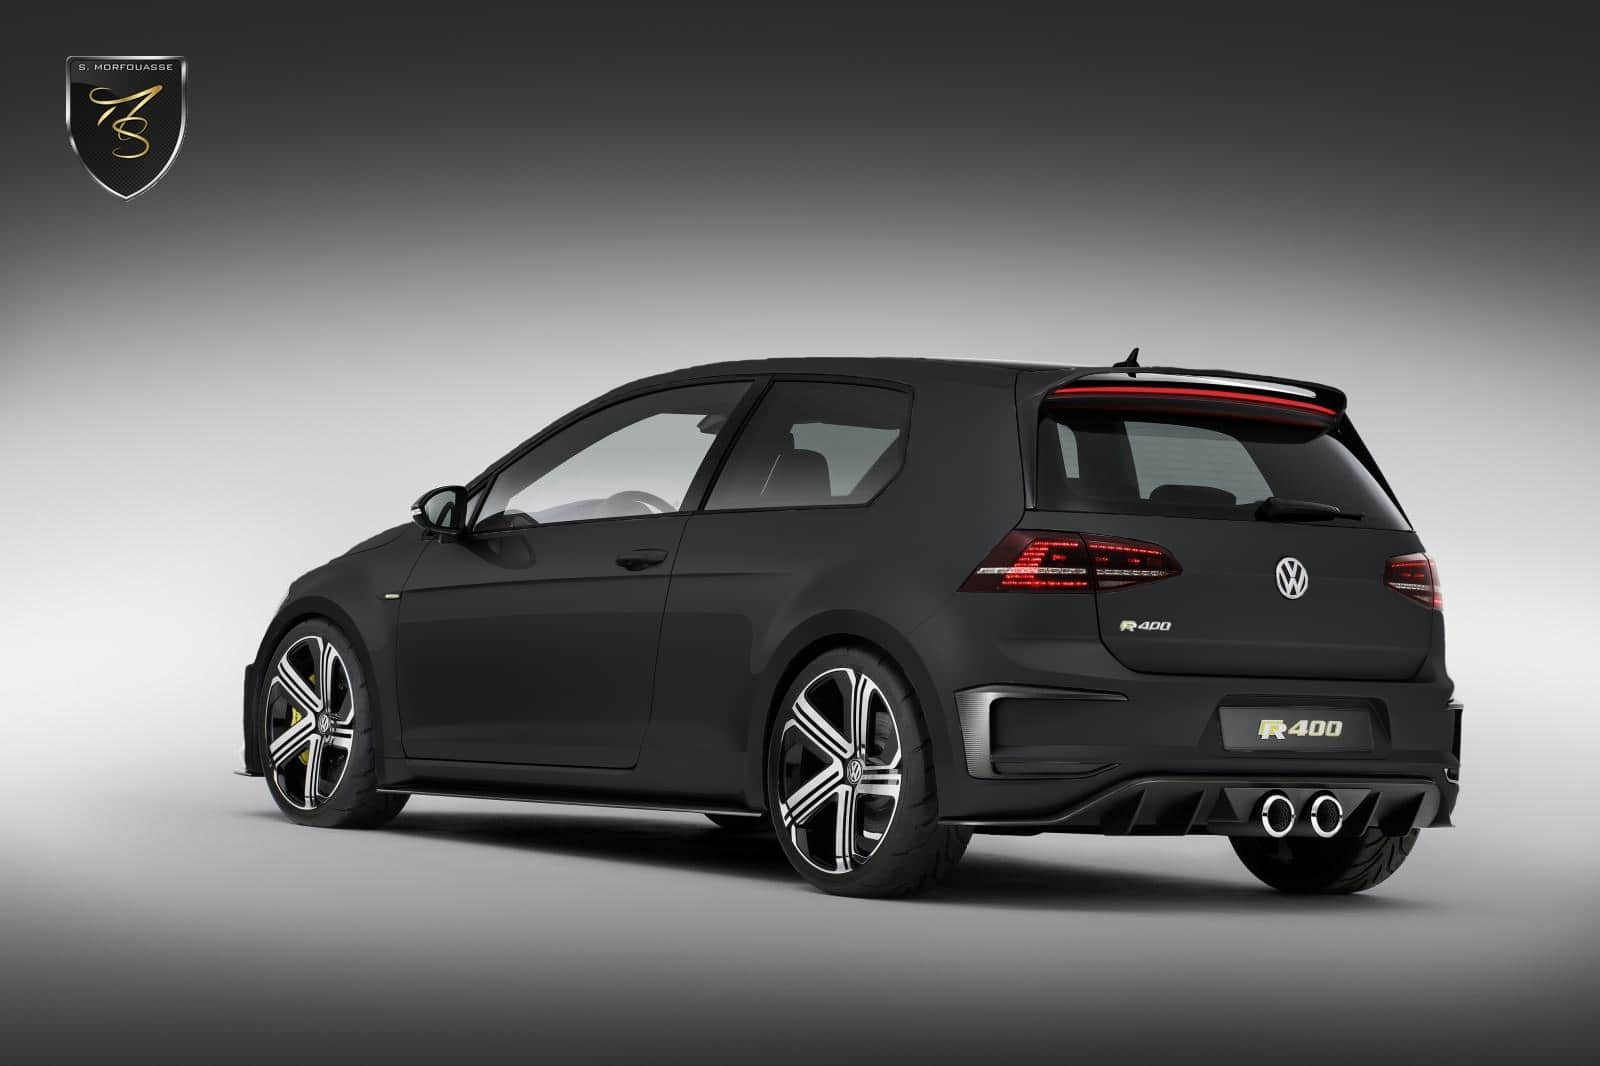 volkswagen golf r 400 for sale autos post. Black Bedroom Furniture Sets. Home Design Ideas